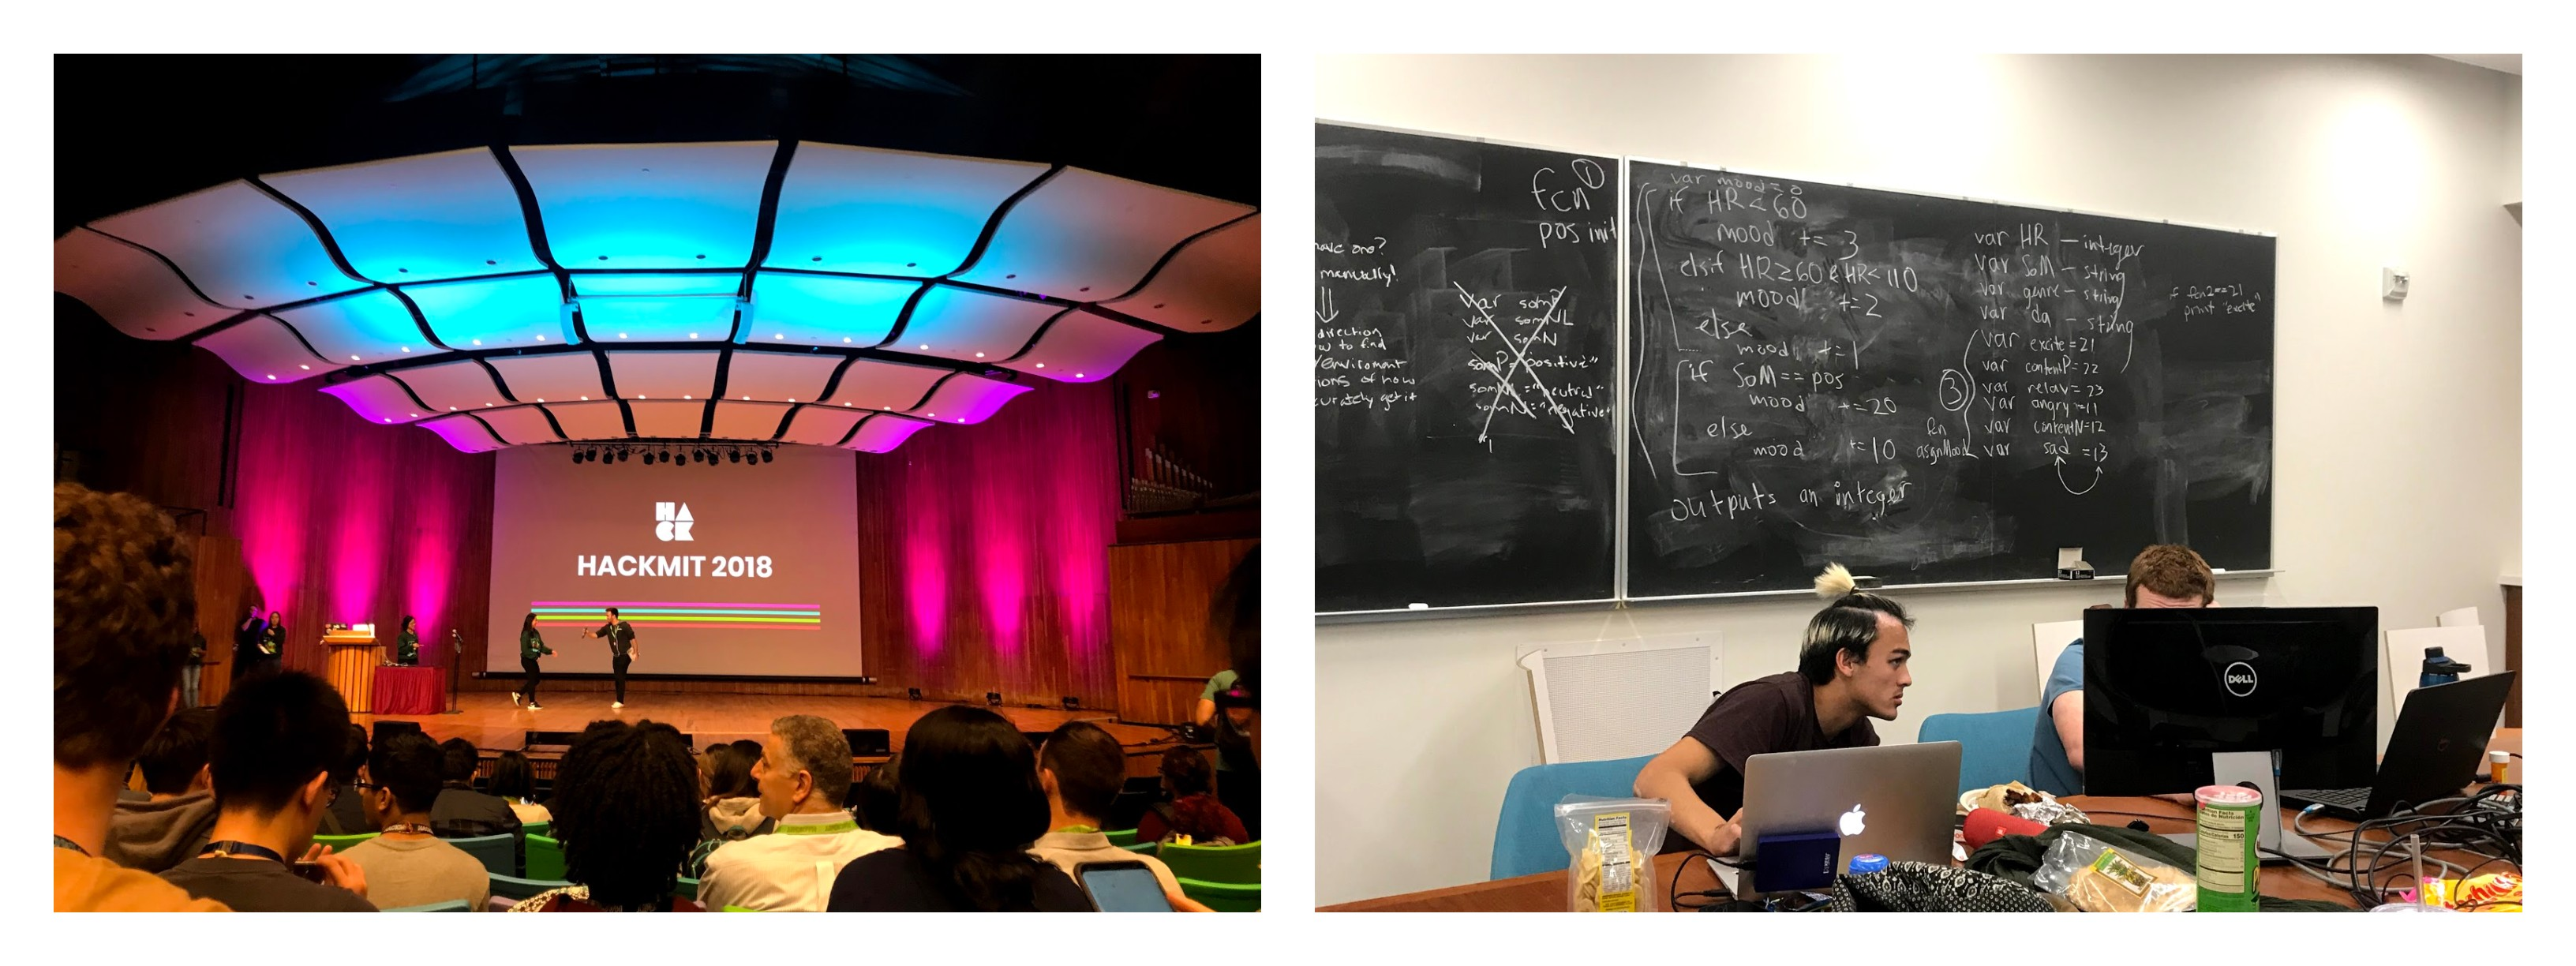 """The left photo is of an auditorium at MIT the welcoming ceremony for the hackathon was held. The screen on stage reads """"HackMIT 2018"""". The right photo is two college students working on computers in a classroom with a bunch of notes written on the chalkboard behind them."""